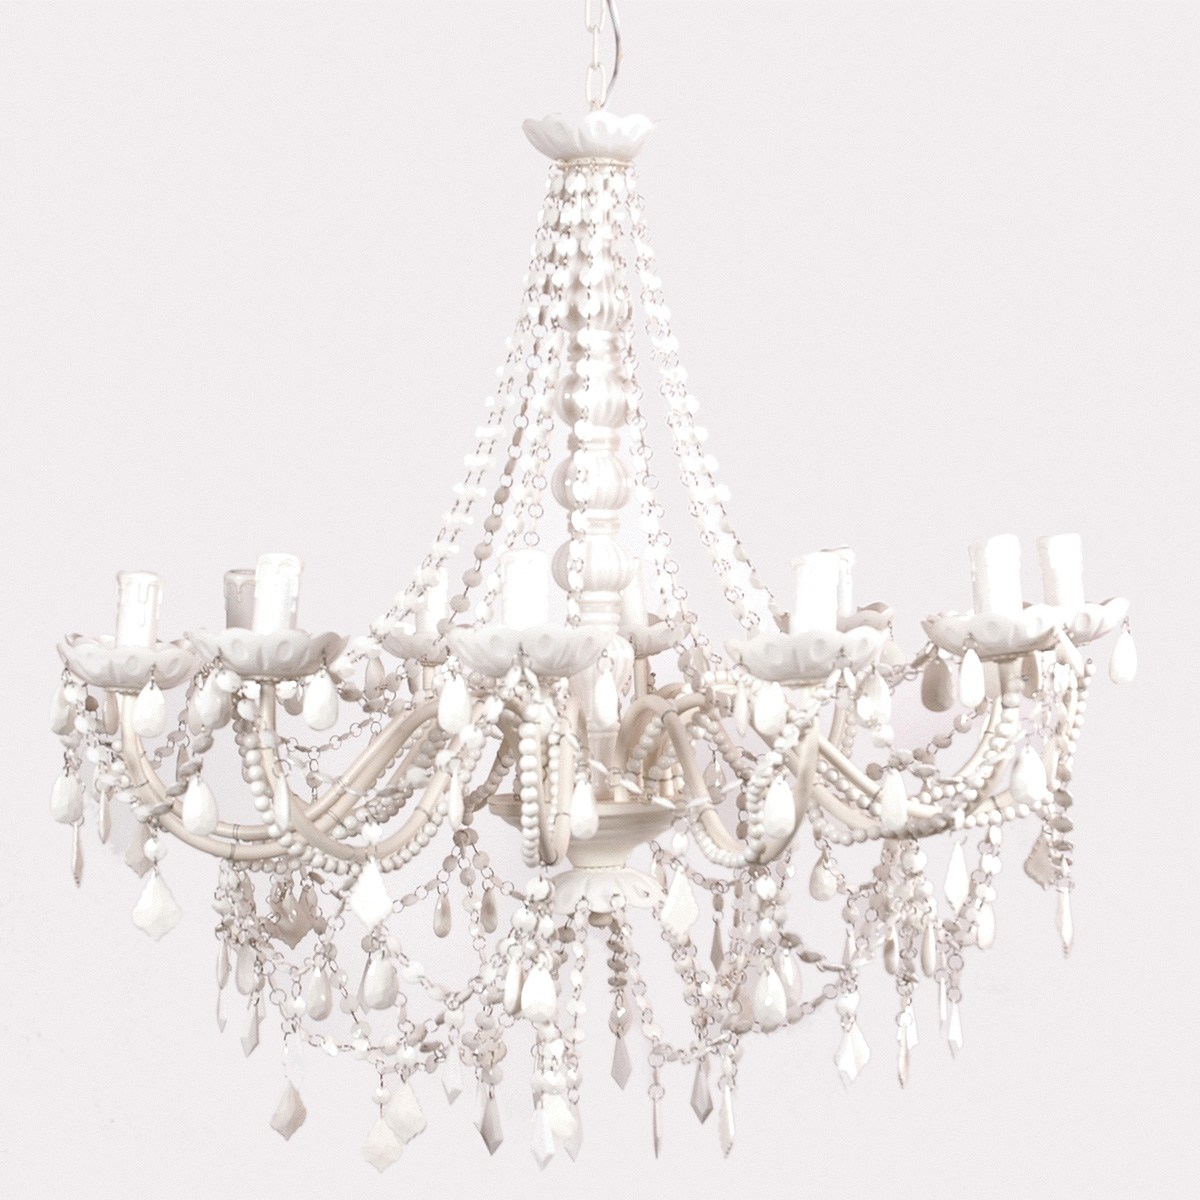 of ceiling height over 8 height from table top to bottom of chandelier